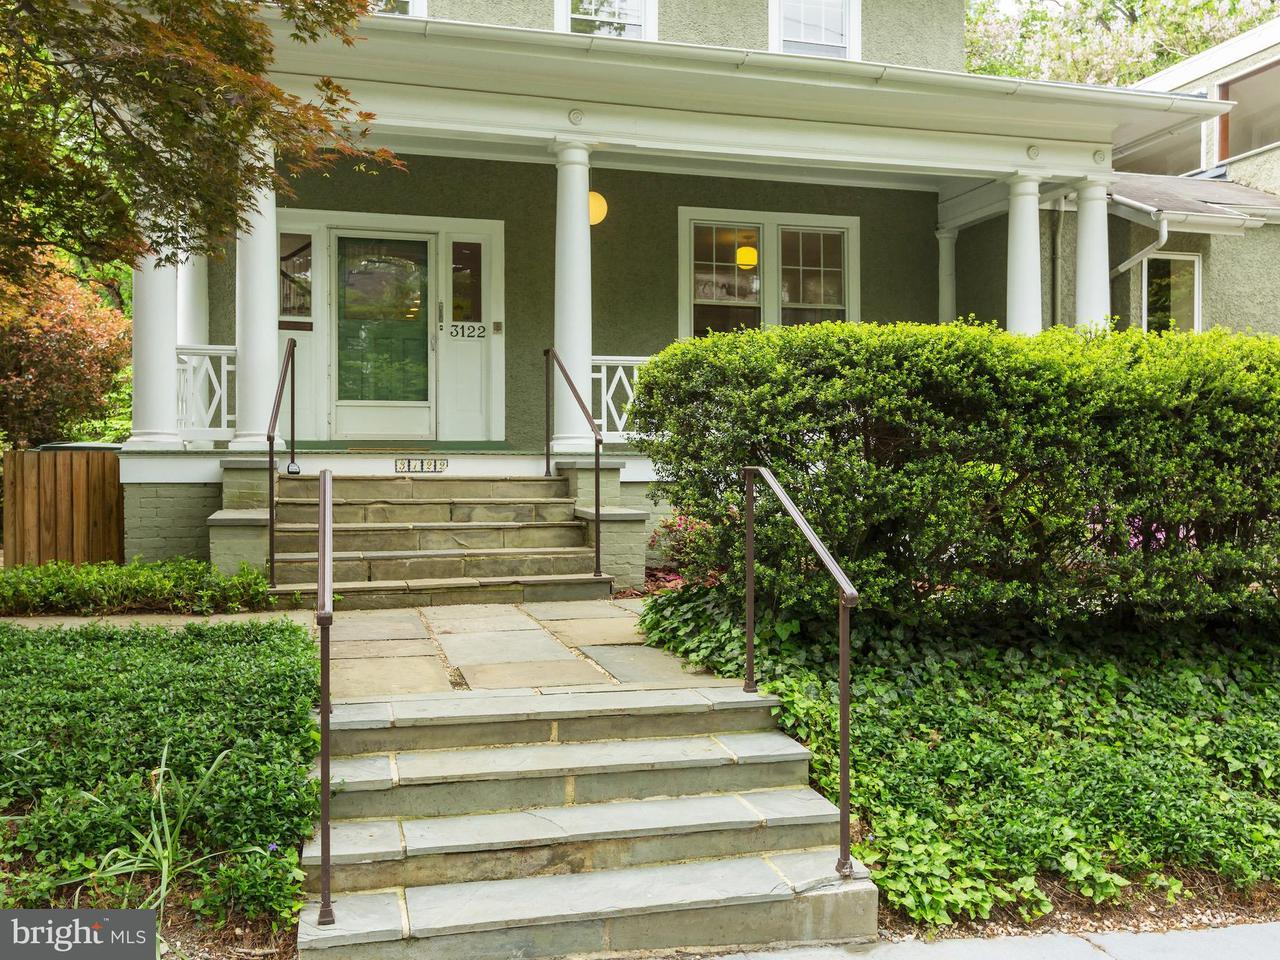 Additional photo for property listing at 3122 Newark St NW  Washington, District Of Columbia 20008 United States